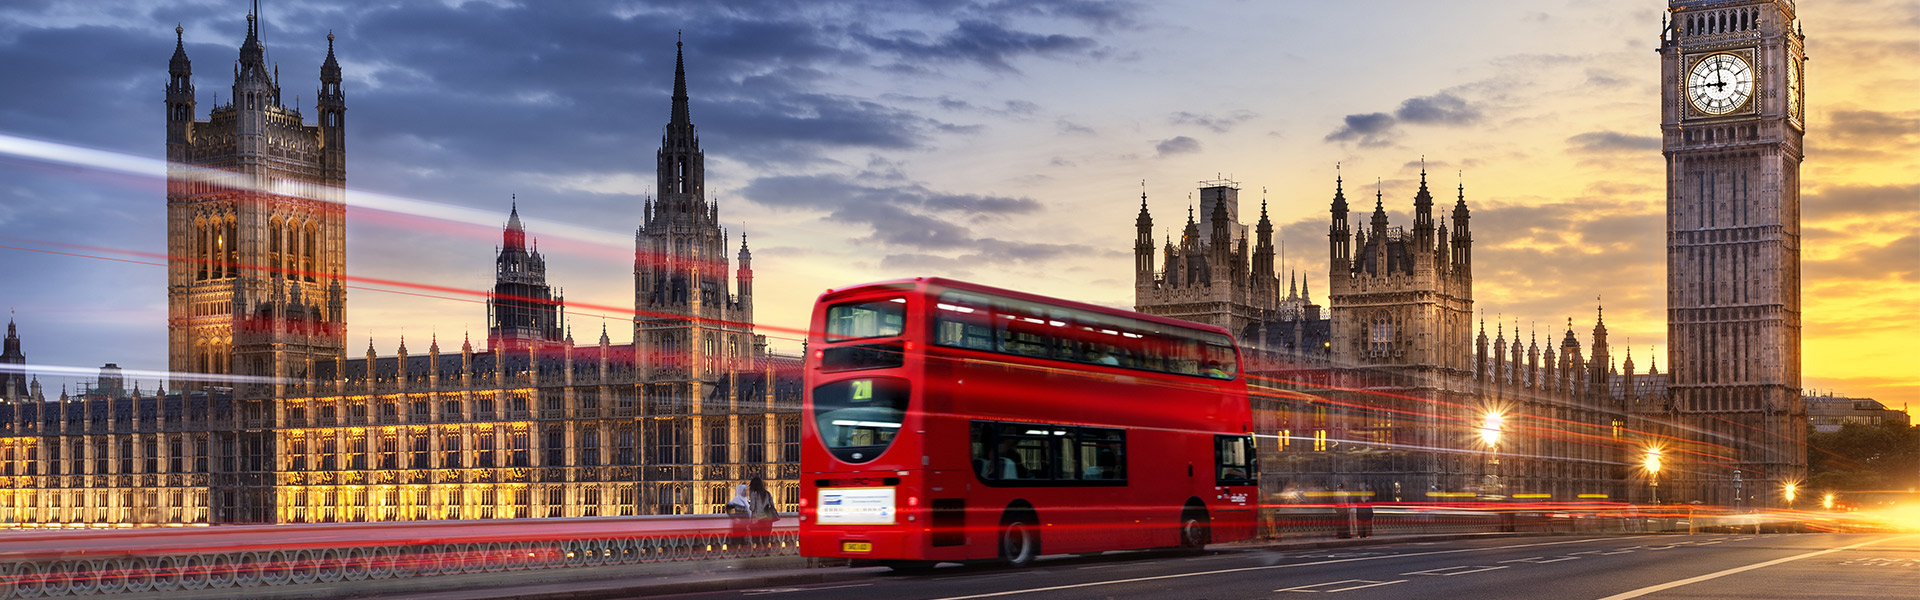 Bus rouge traversant Westminster